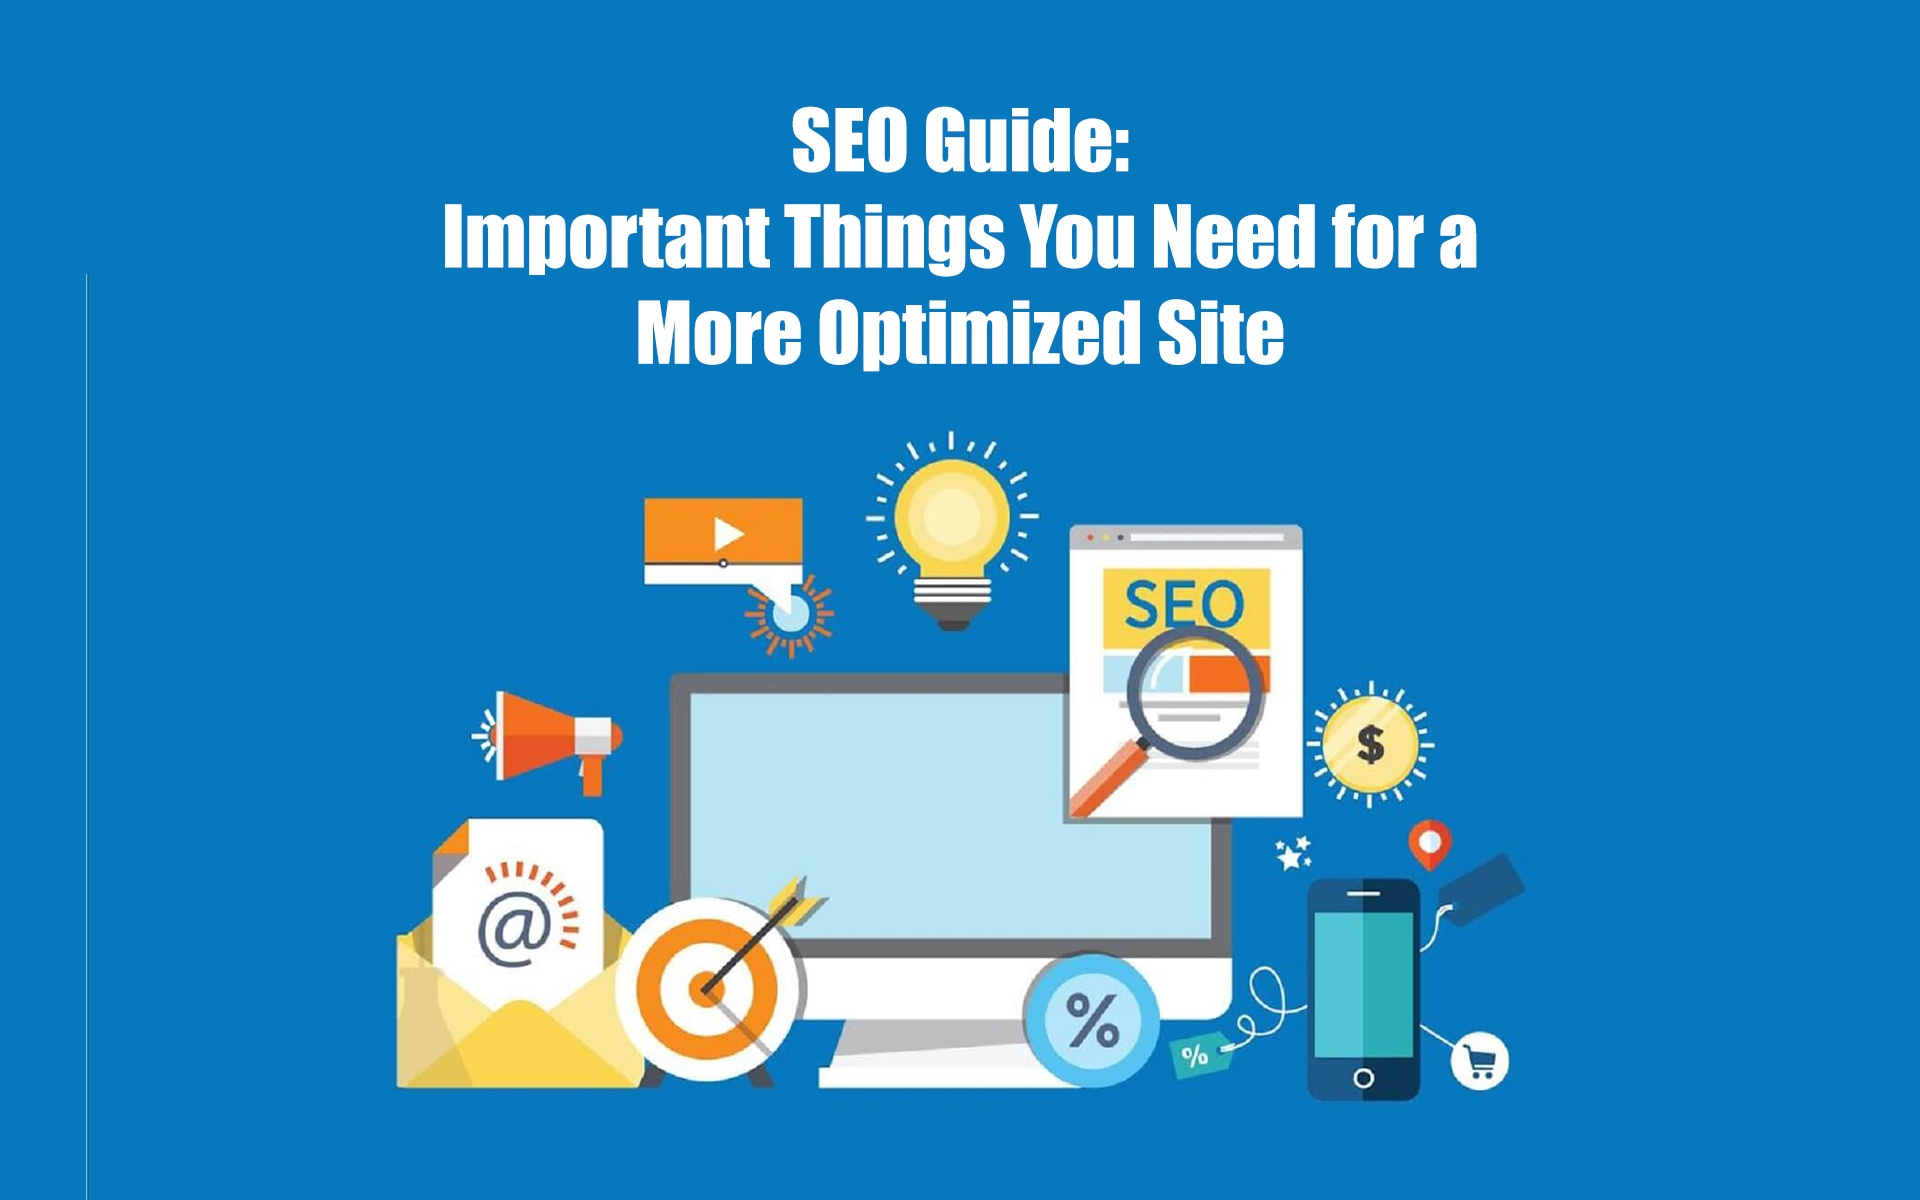 SEO Guide: Important Things You Need for a More Optimized Site